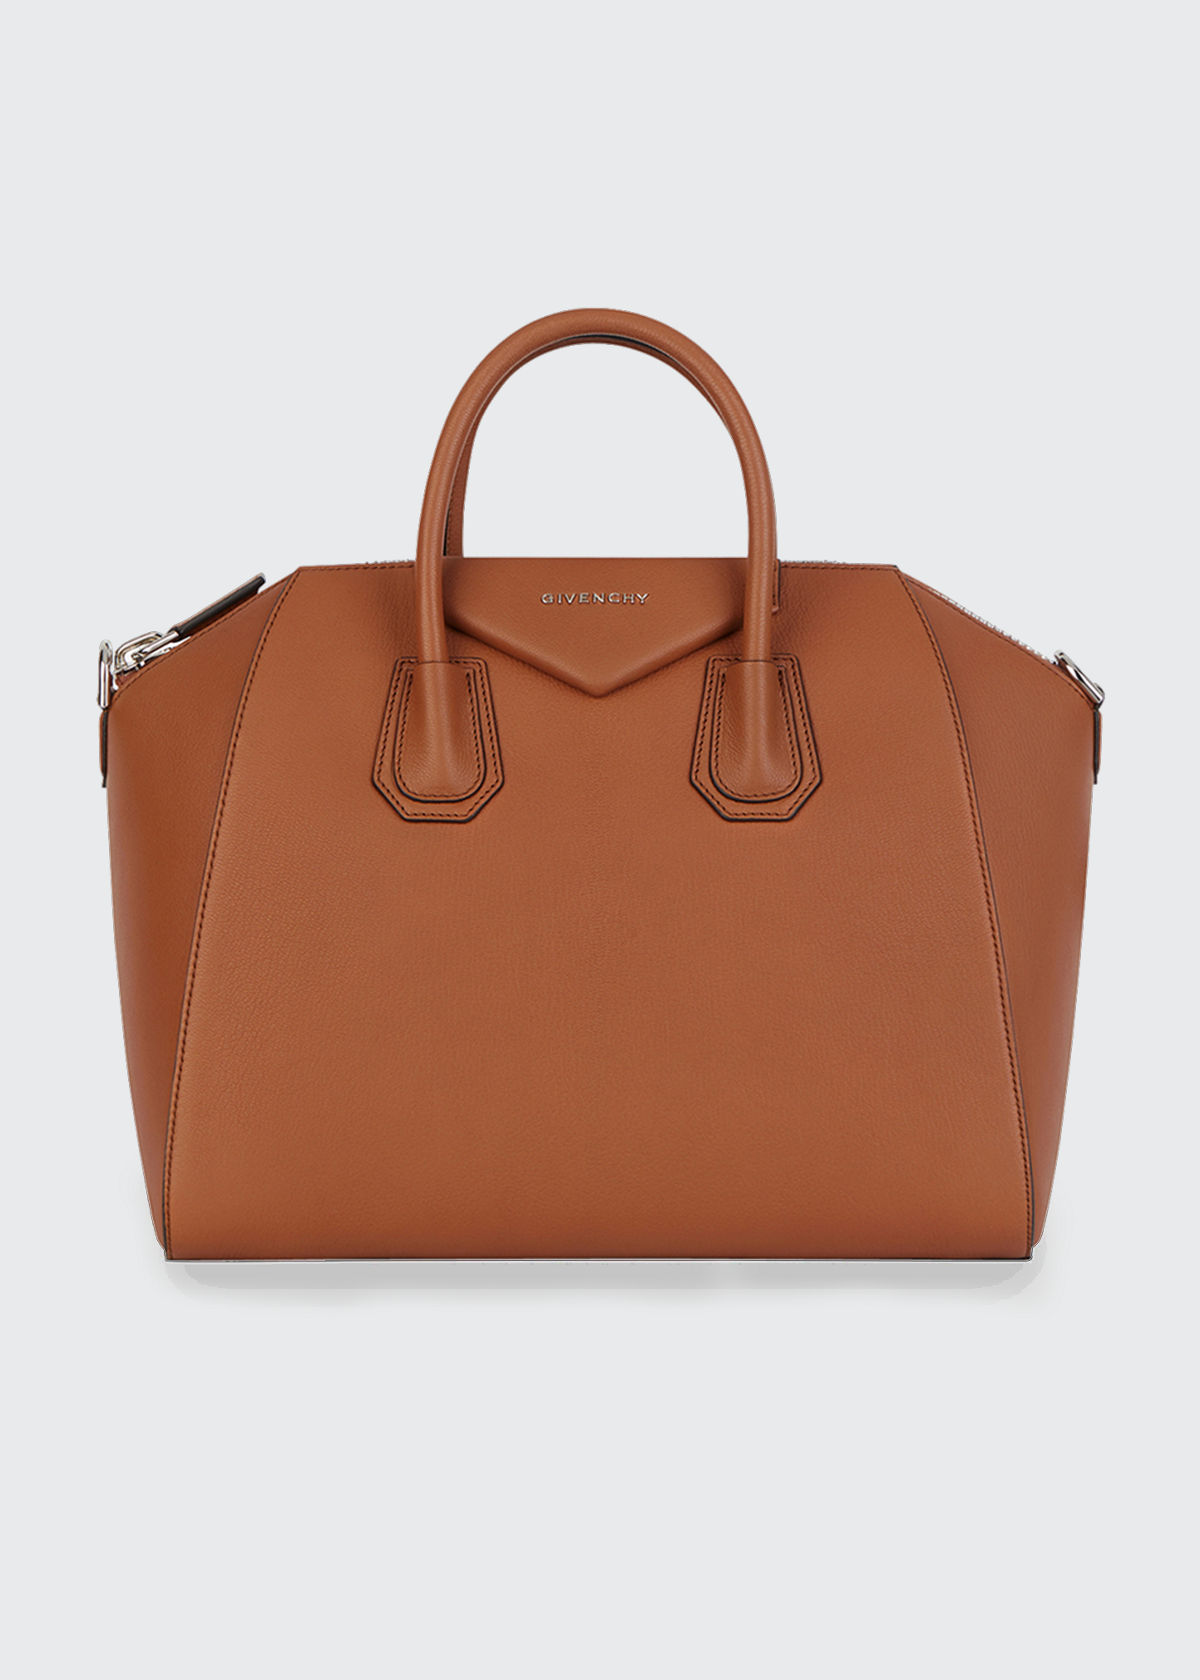 Givenchy Bags ANTIGONA MEDIUM SUGAR GOATSKIN SATCHEL BAG